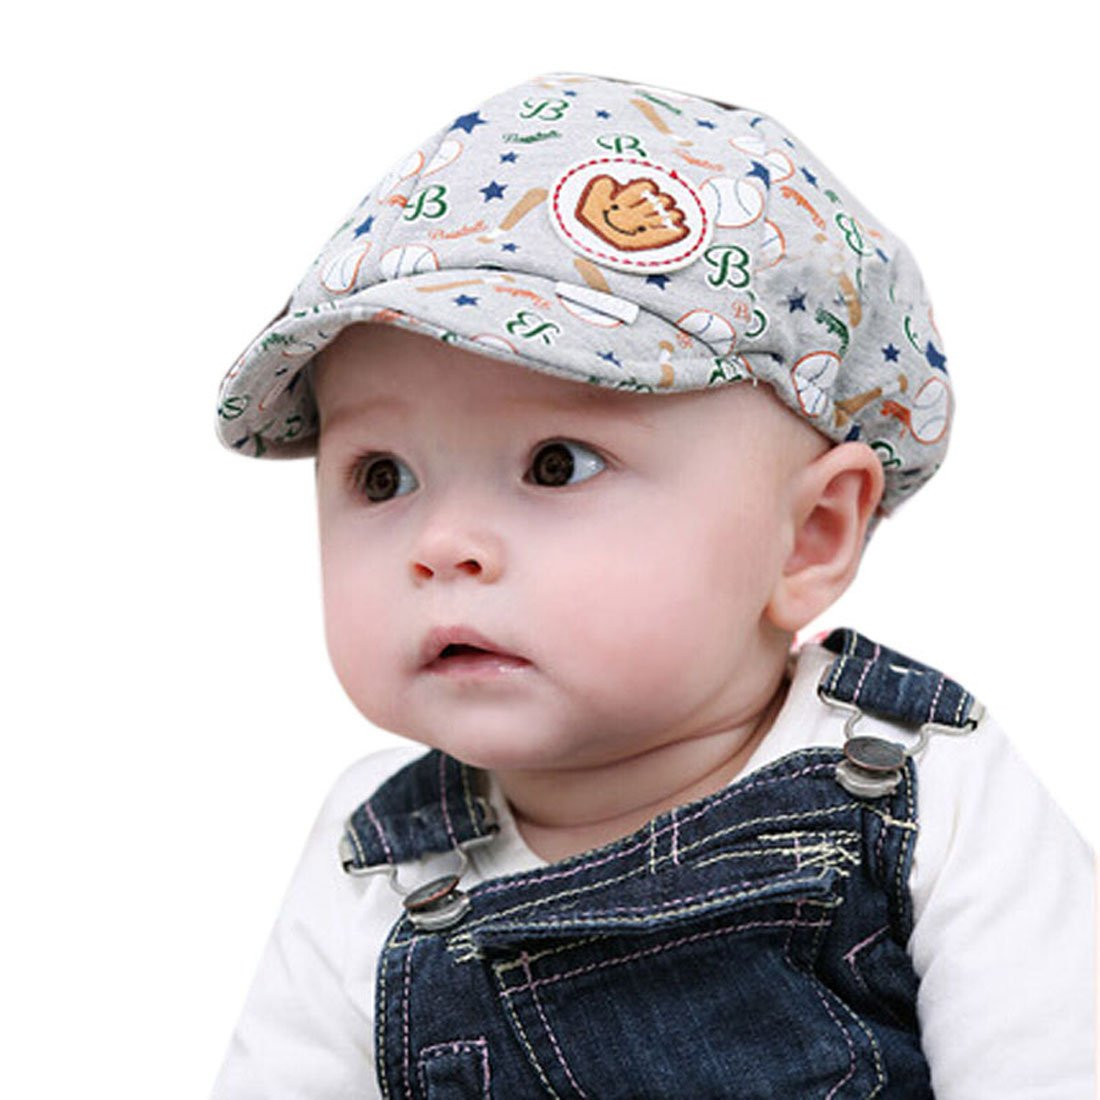 Tenworld Fashion Baby Boy Girl Kid Toddler Infant Hat Peaked Baseball Beret Cap Hot Tenworld-hat